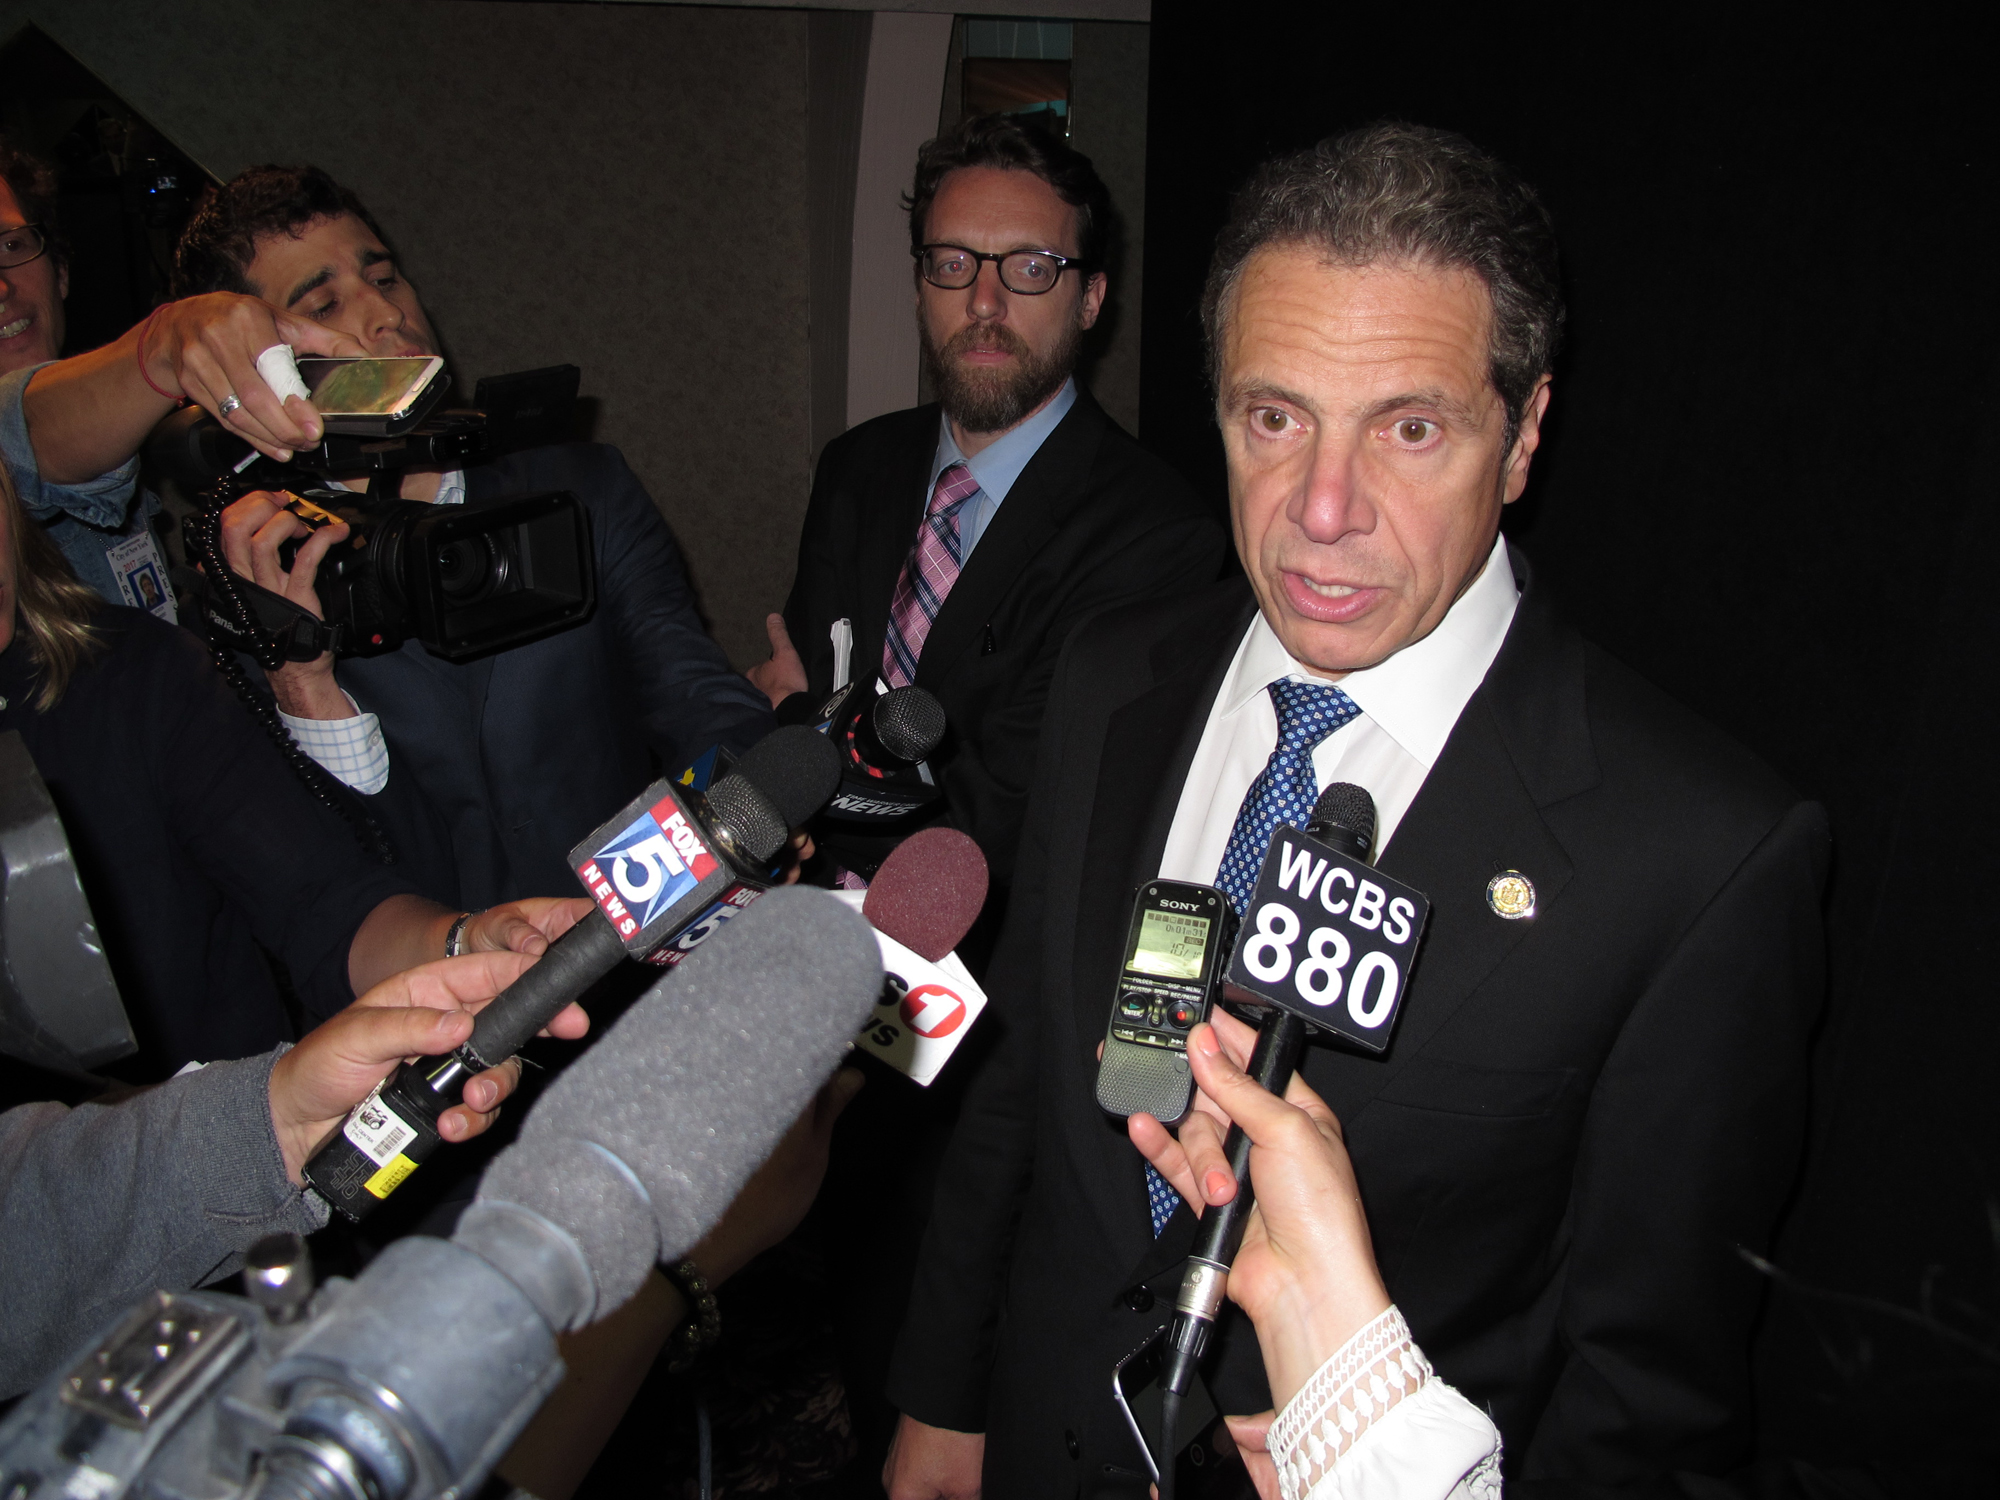 New York Gov. Andrew Cuomo speaks with reporters on Wednesday, June 3, 2015, in Seaford, N.Y. Cuomo said he supports New York Racing Association Chairman Anthony Bonomo's decision to take a leave of absence following revelations that Bonomo's company alle